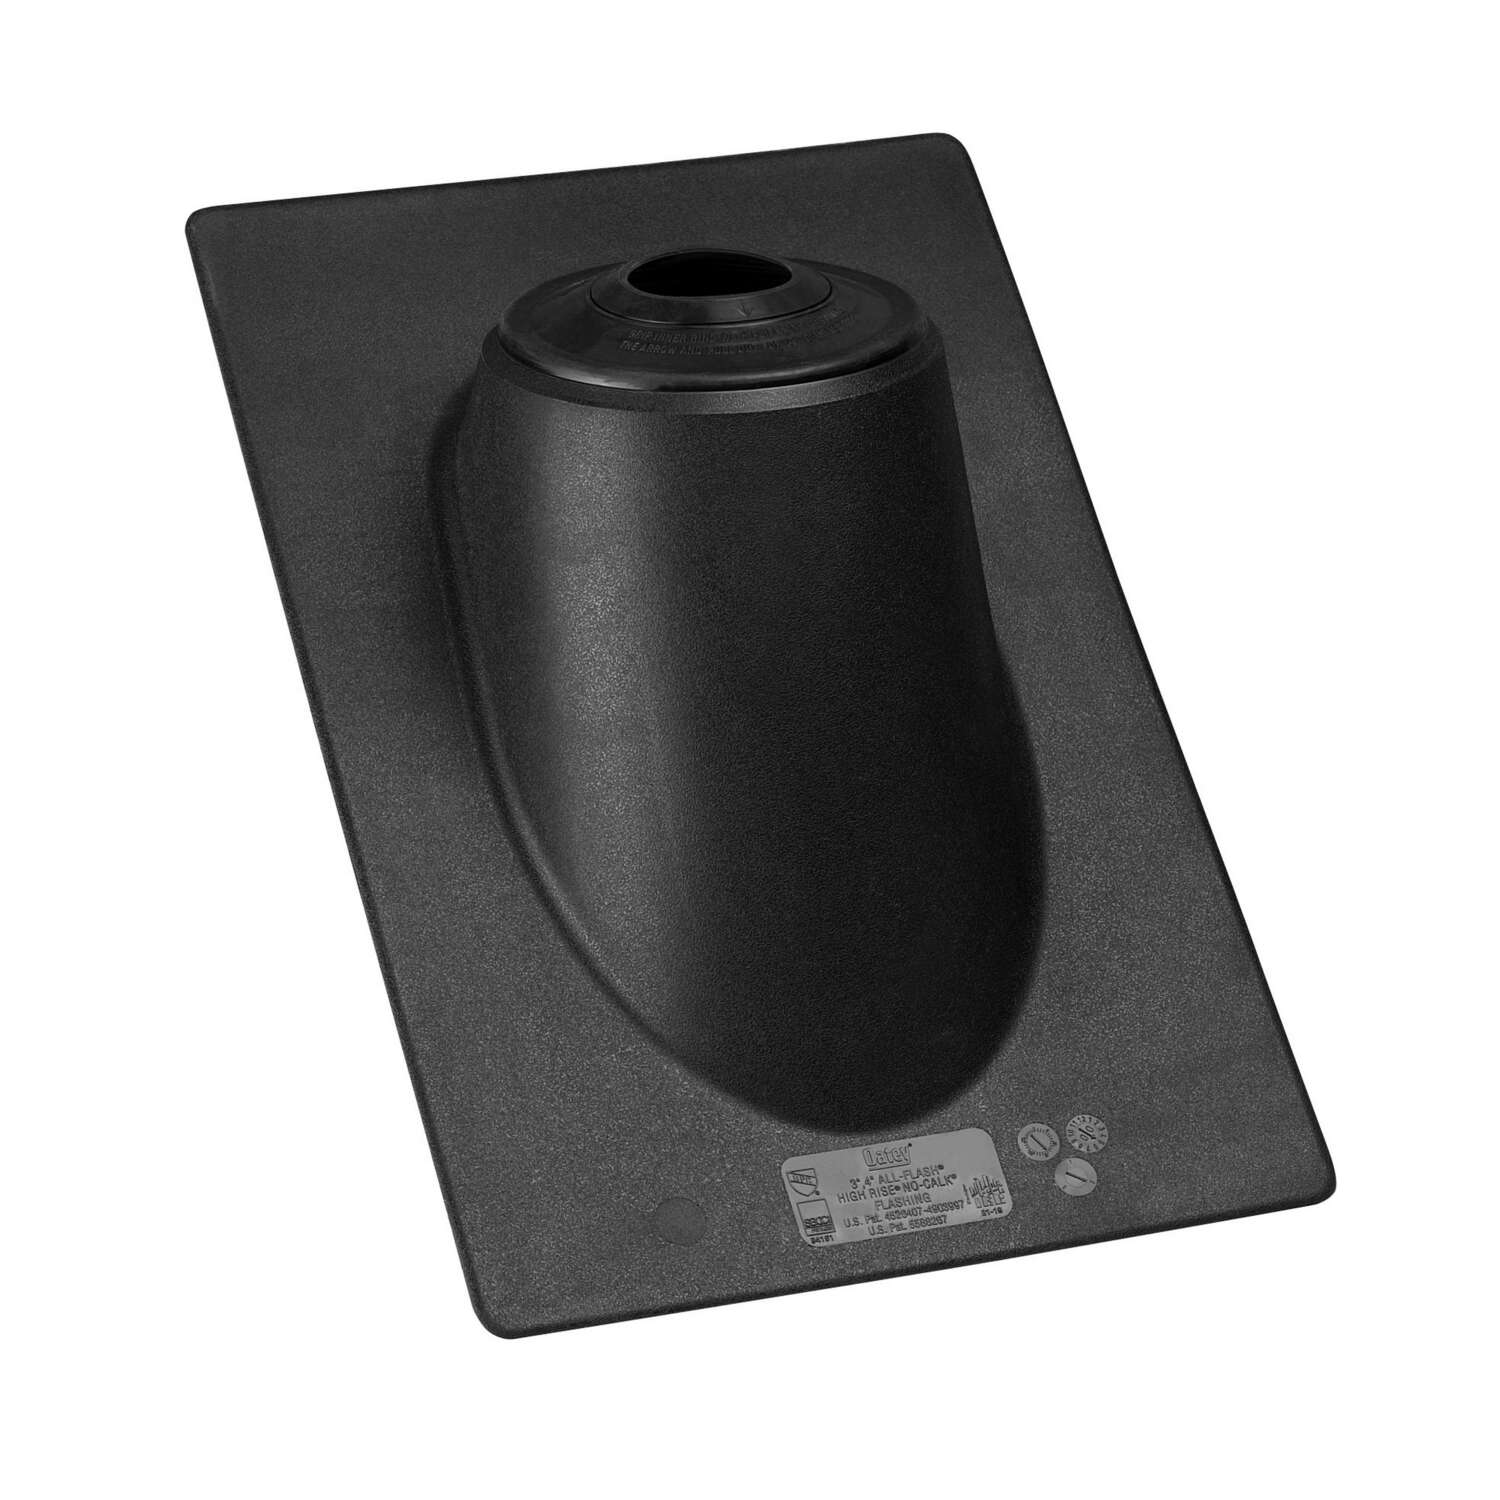 Oatey  High-Rise  3 in. H x 13 in. W x 20 in. L Black  Rectangle  Roof Flashing  Plastic